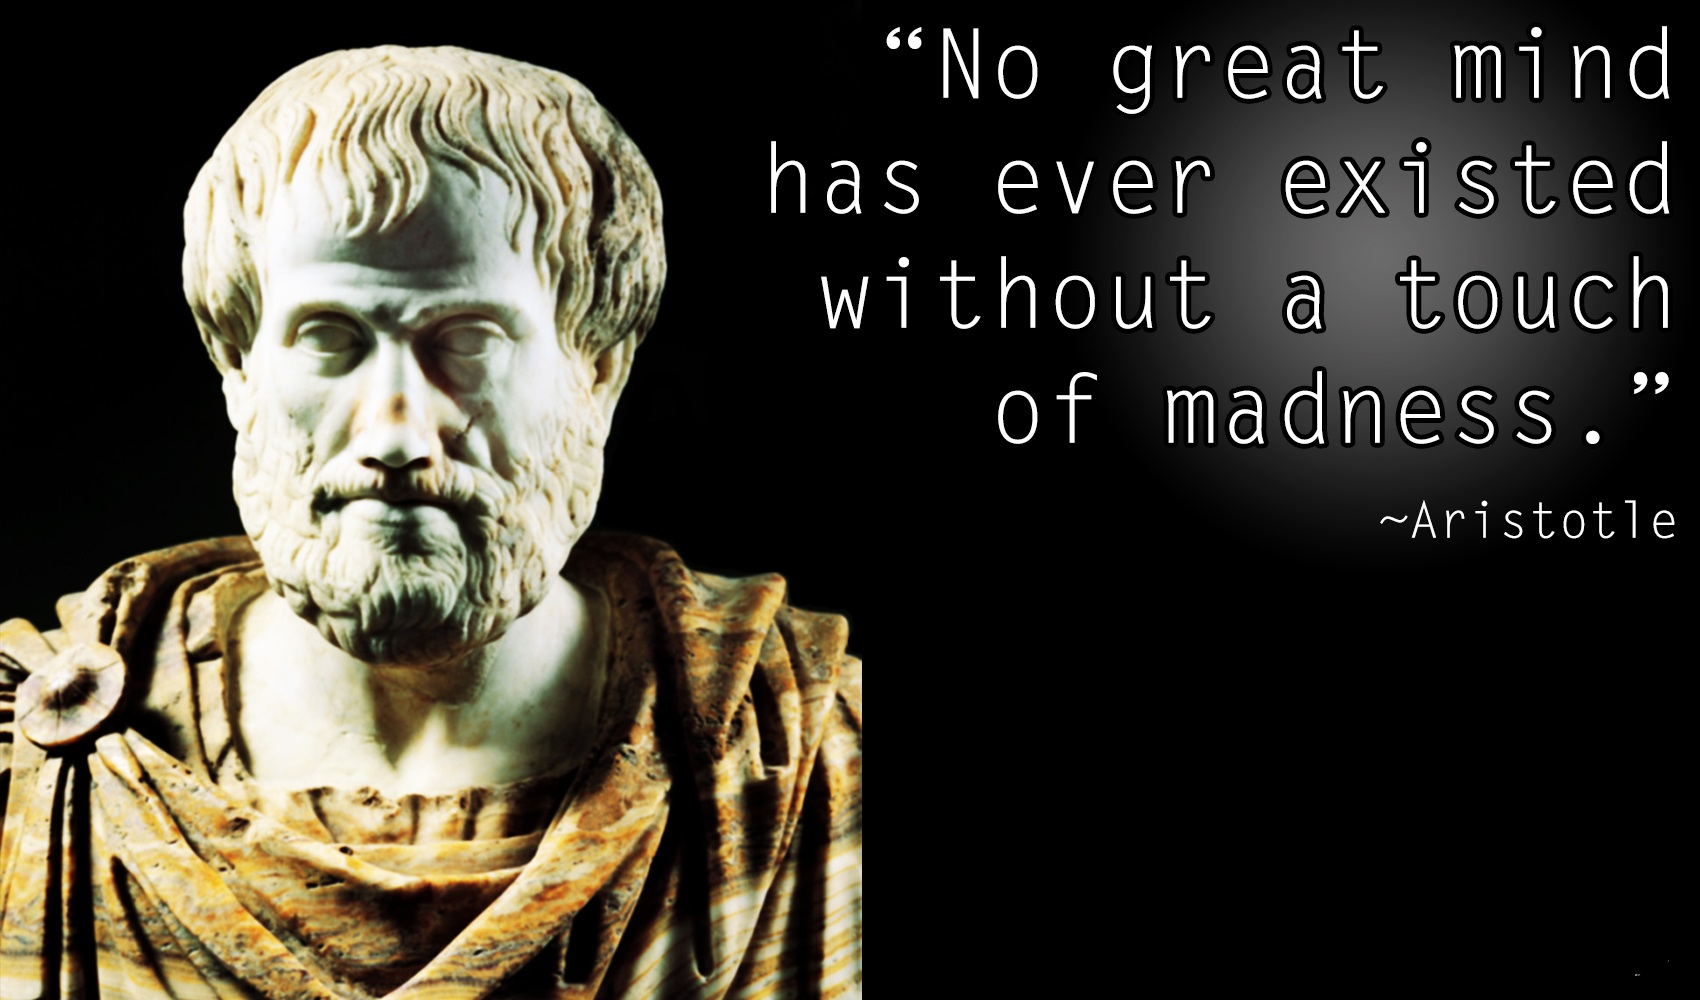 aristotle-quotes-19